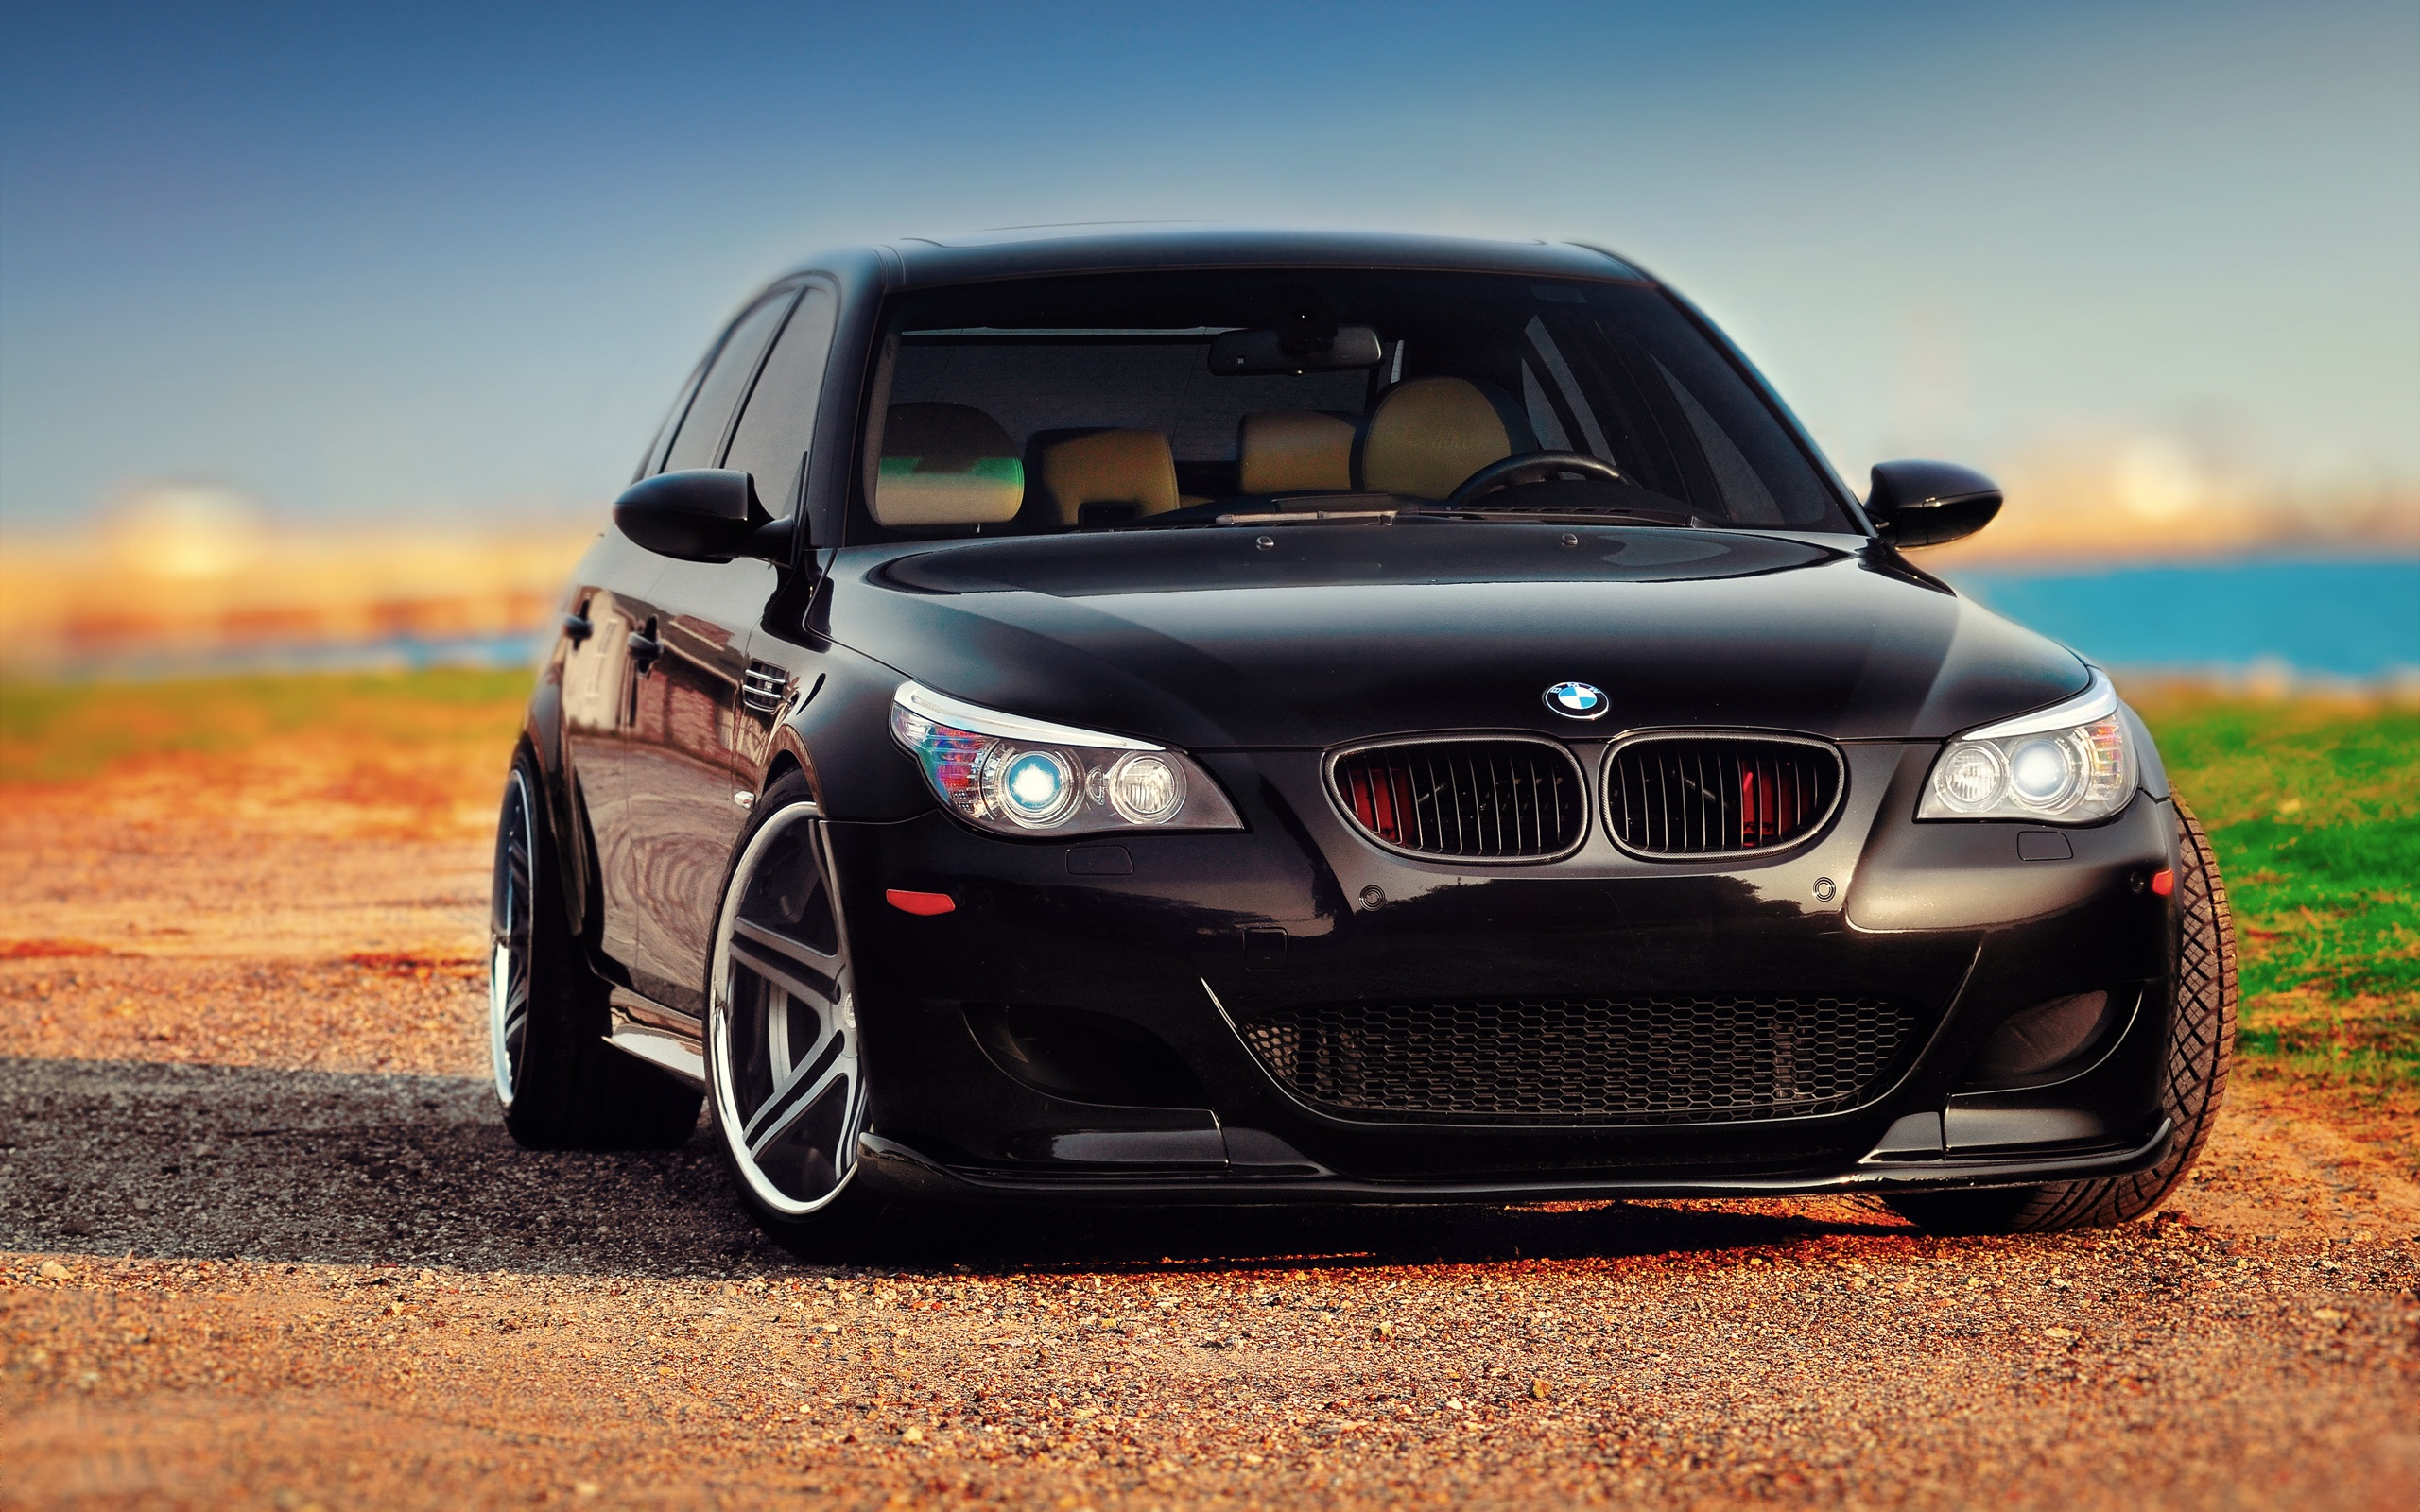 Bmw M5 E60 Black Car Front View 750x1334 Iphone 8 7 6 6s Wallpaper Background Picture Image